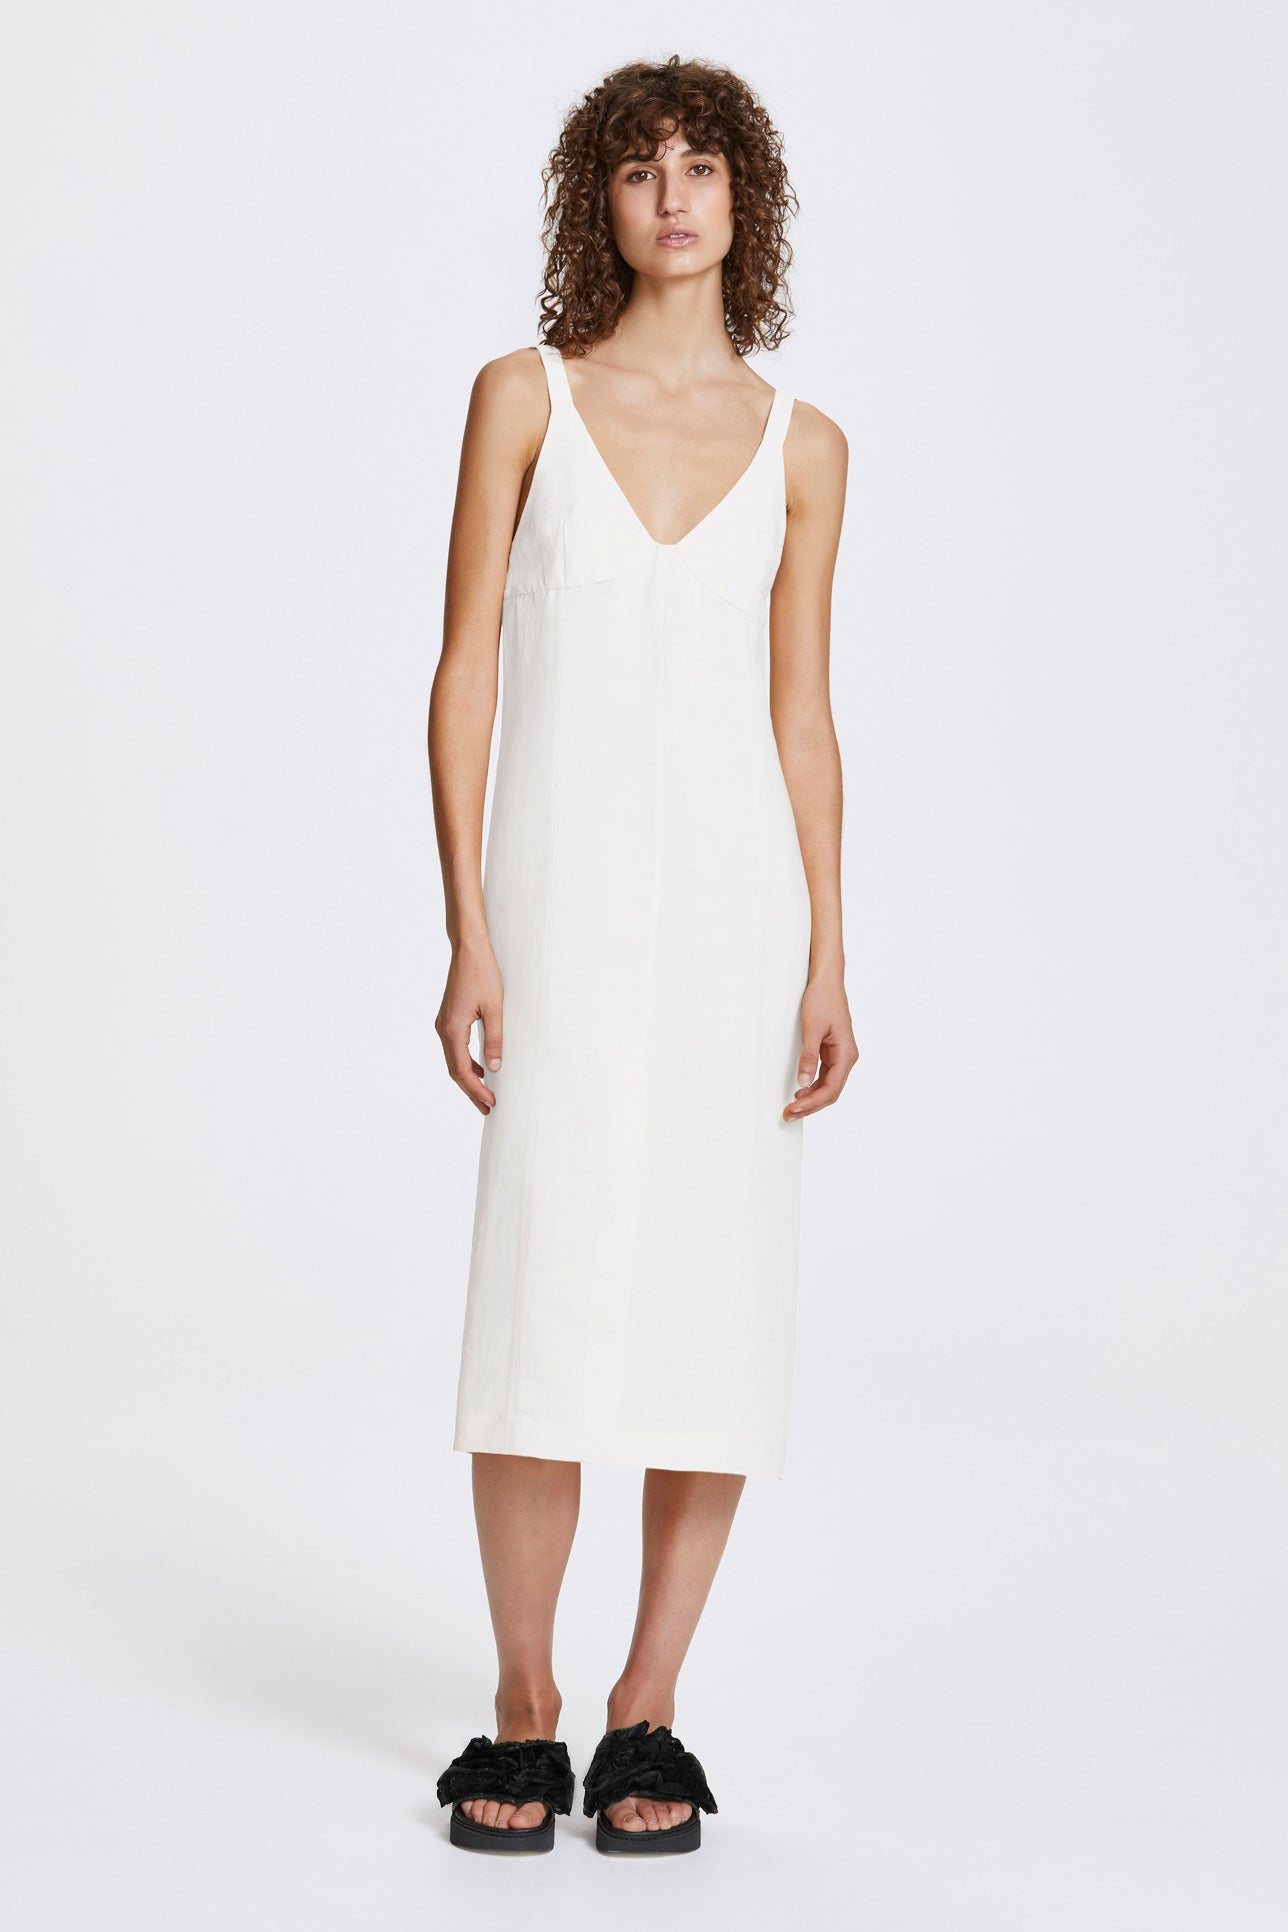 Double vent slip dress - Linen blend - White - Resortwear dress - Her Line